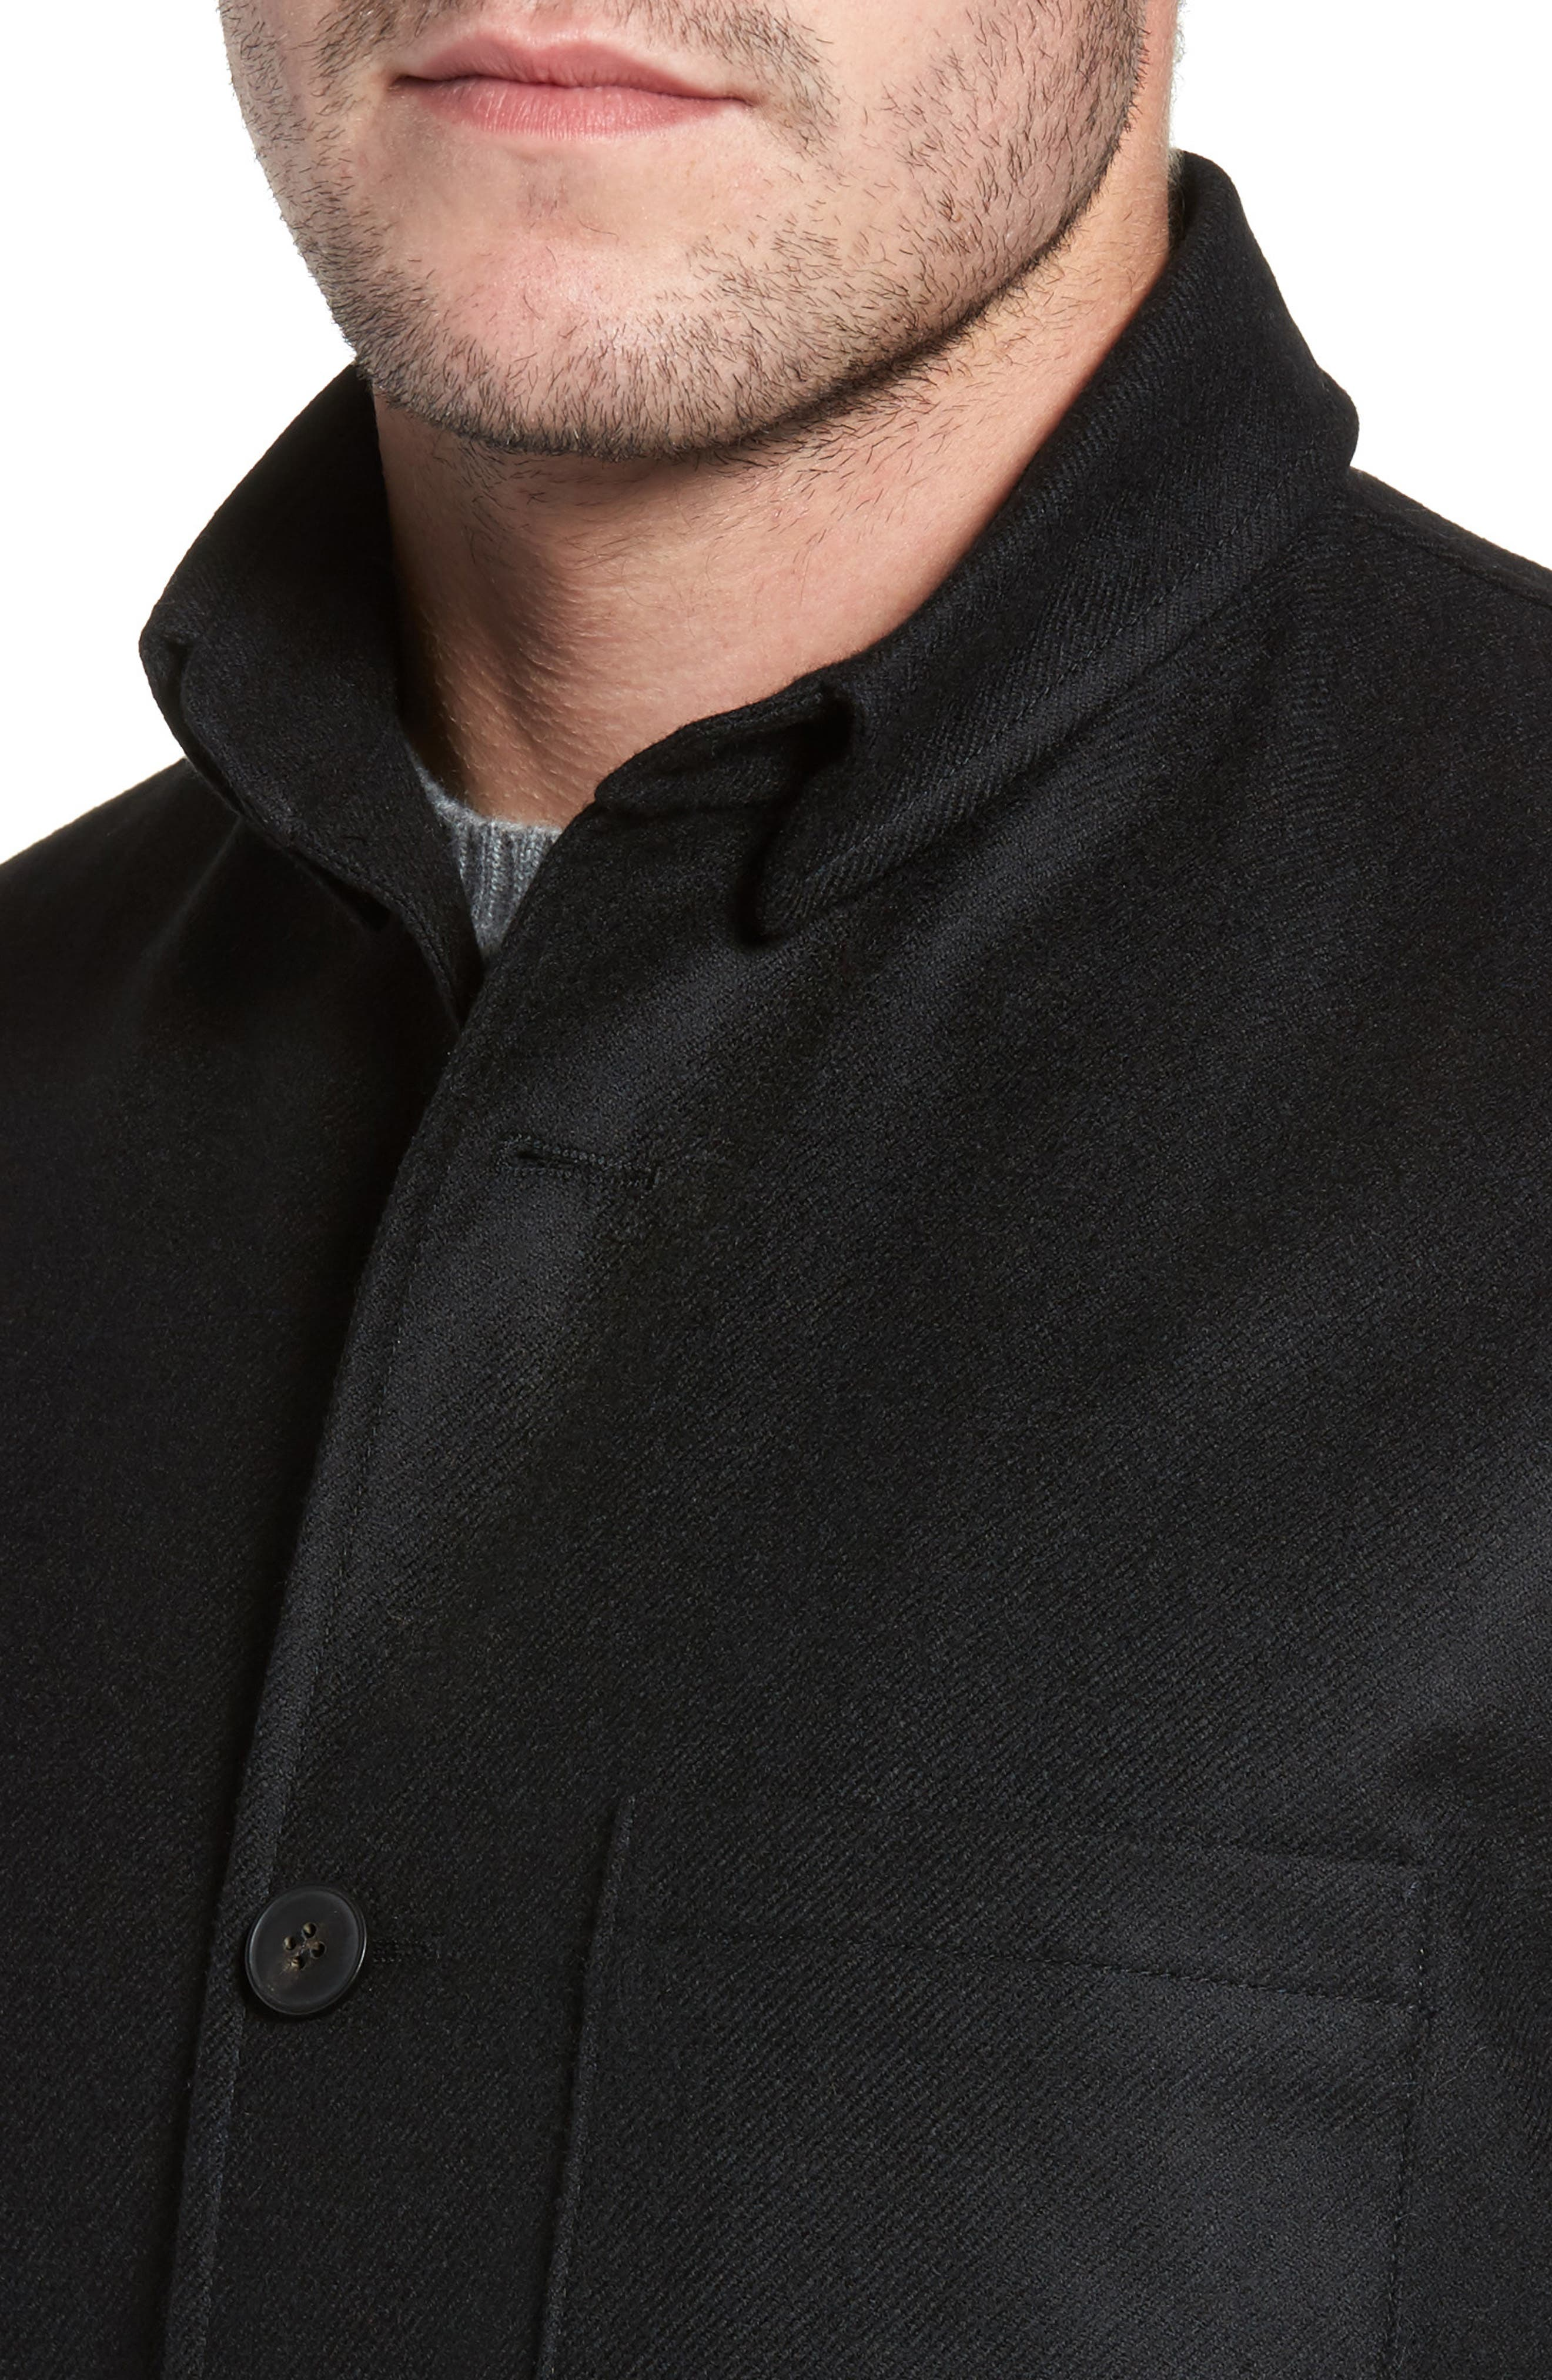 Loro Piana Storm System Shirt Jacket,                             Alternate thumbnail 4, color,                             002